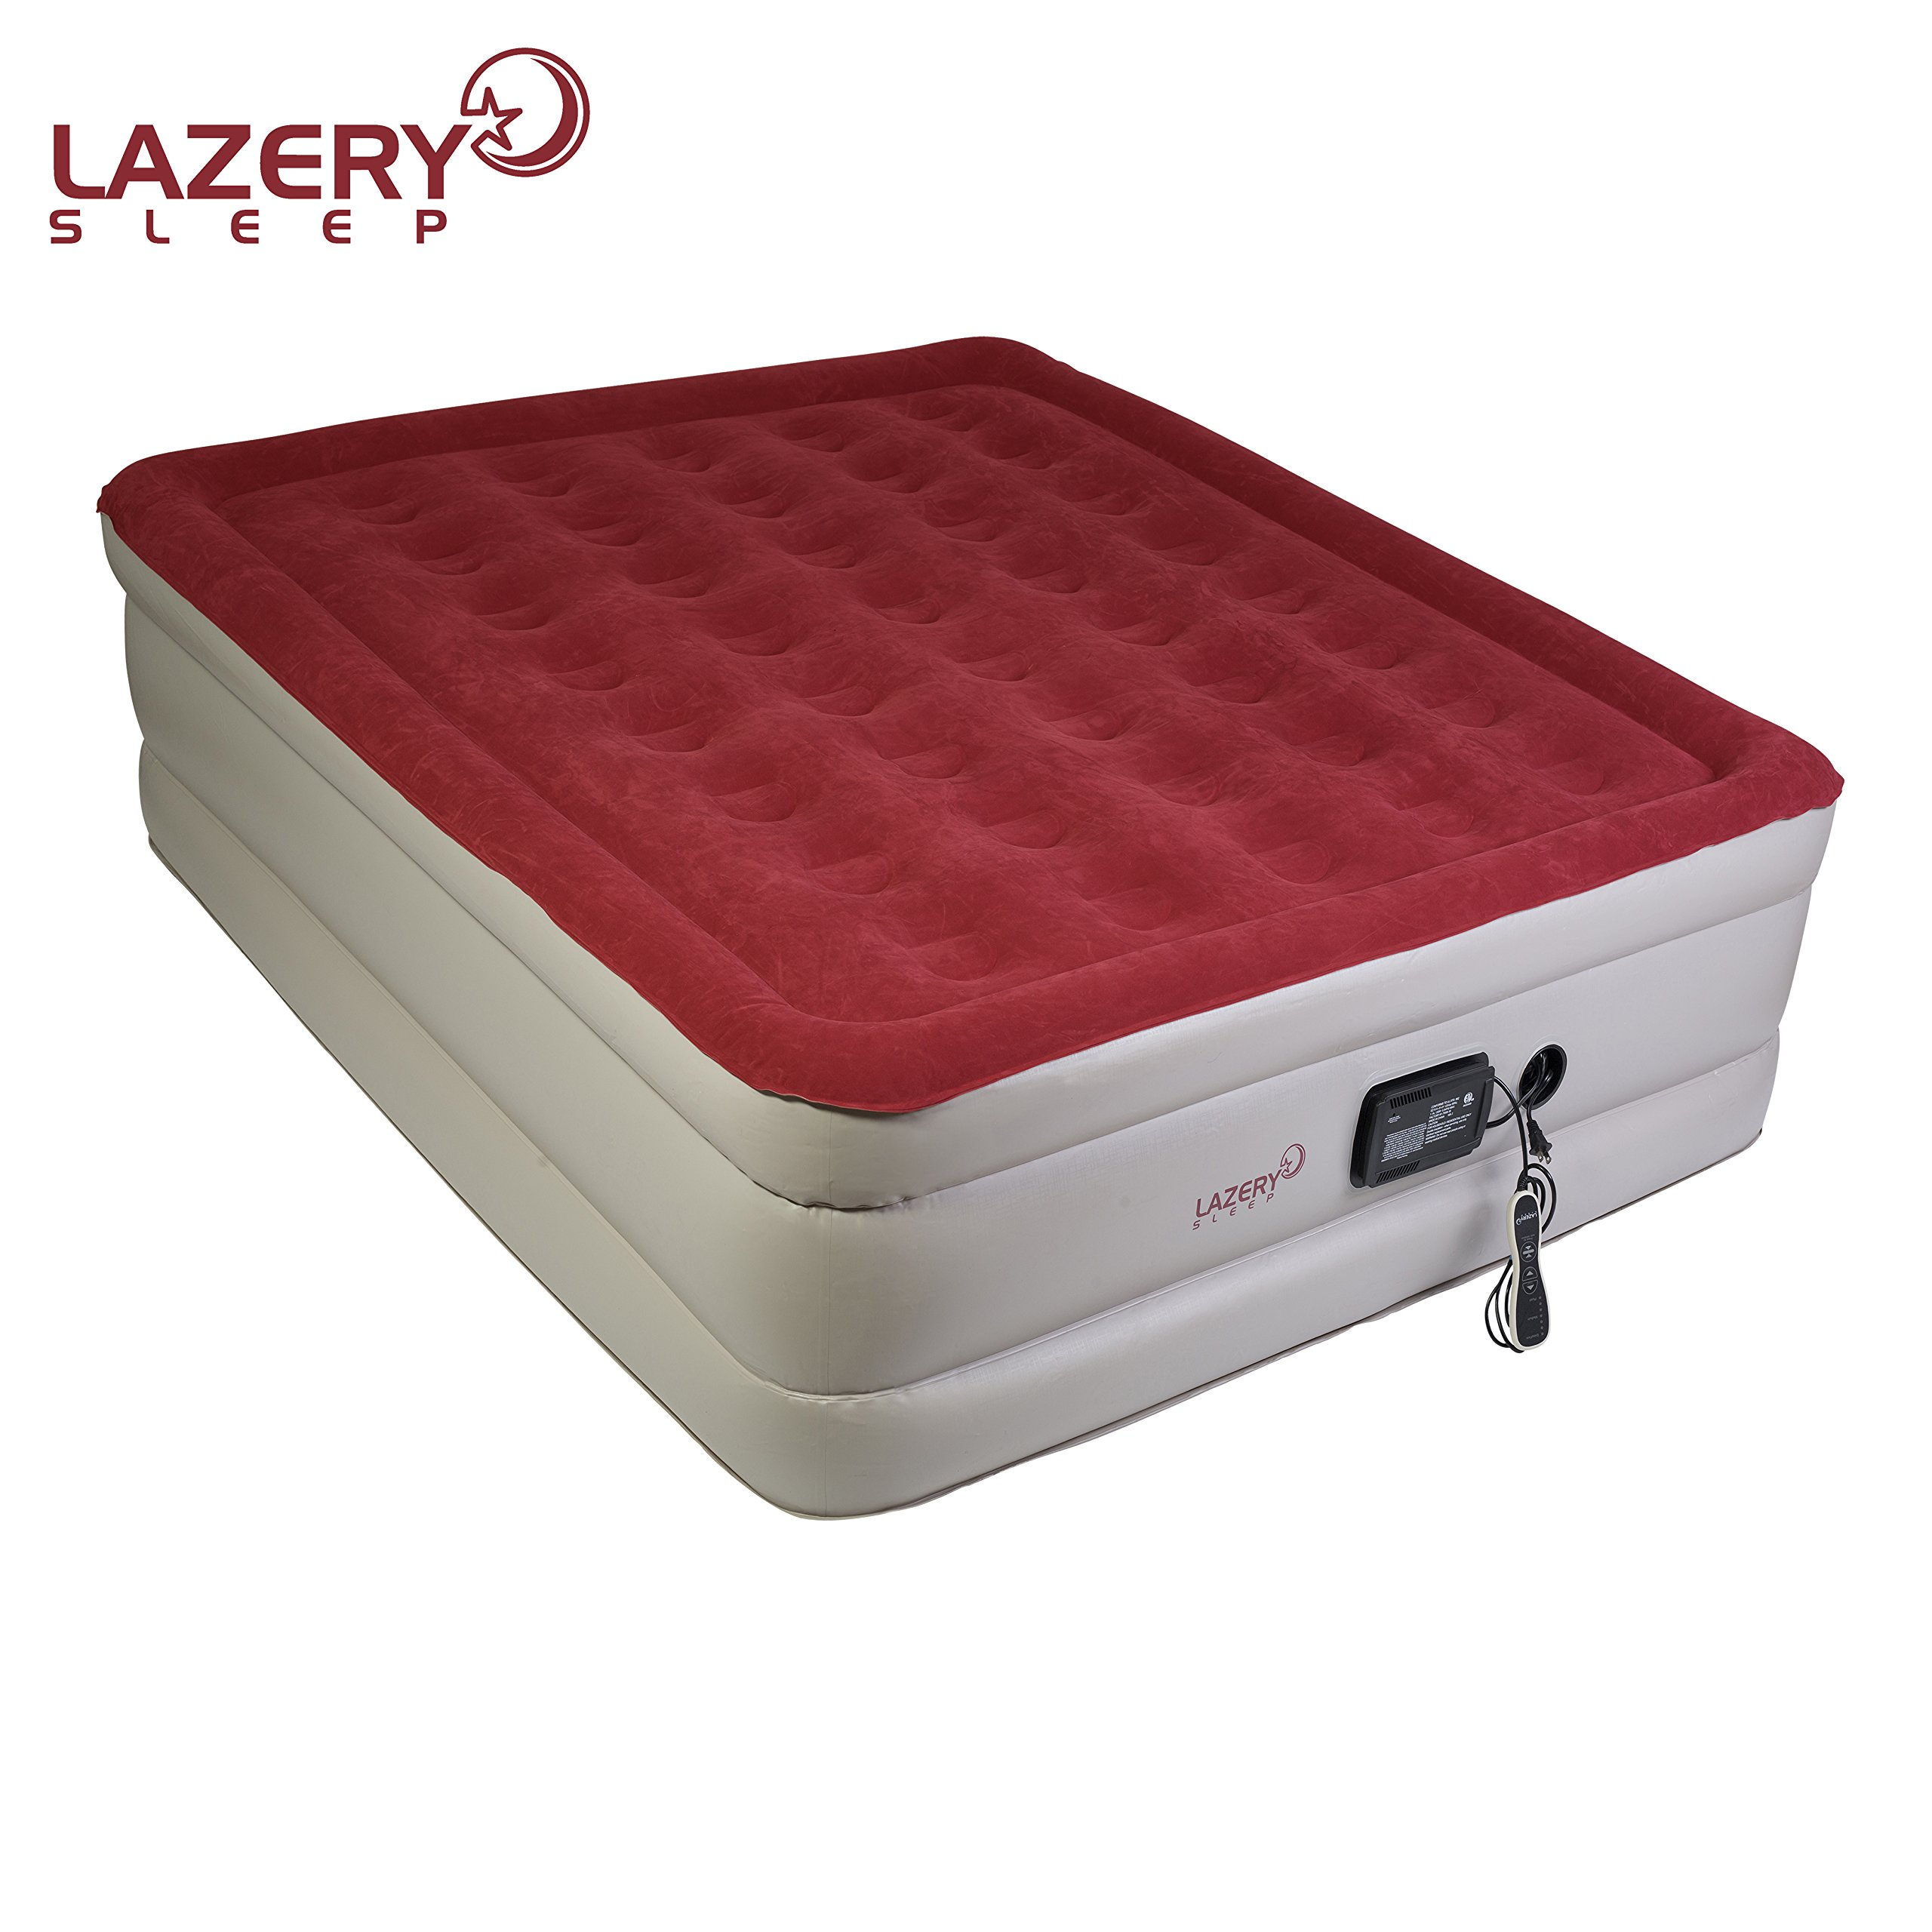 Lazery Sleep Air Mattress – Raised Electric Airbed With Built In Pump & Carry Bag – Fast Inflation, LED Remote Control & 7 Firmness Settings –Queen 78'' x 58'' x 19''